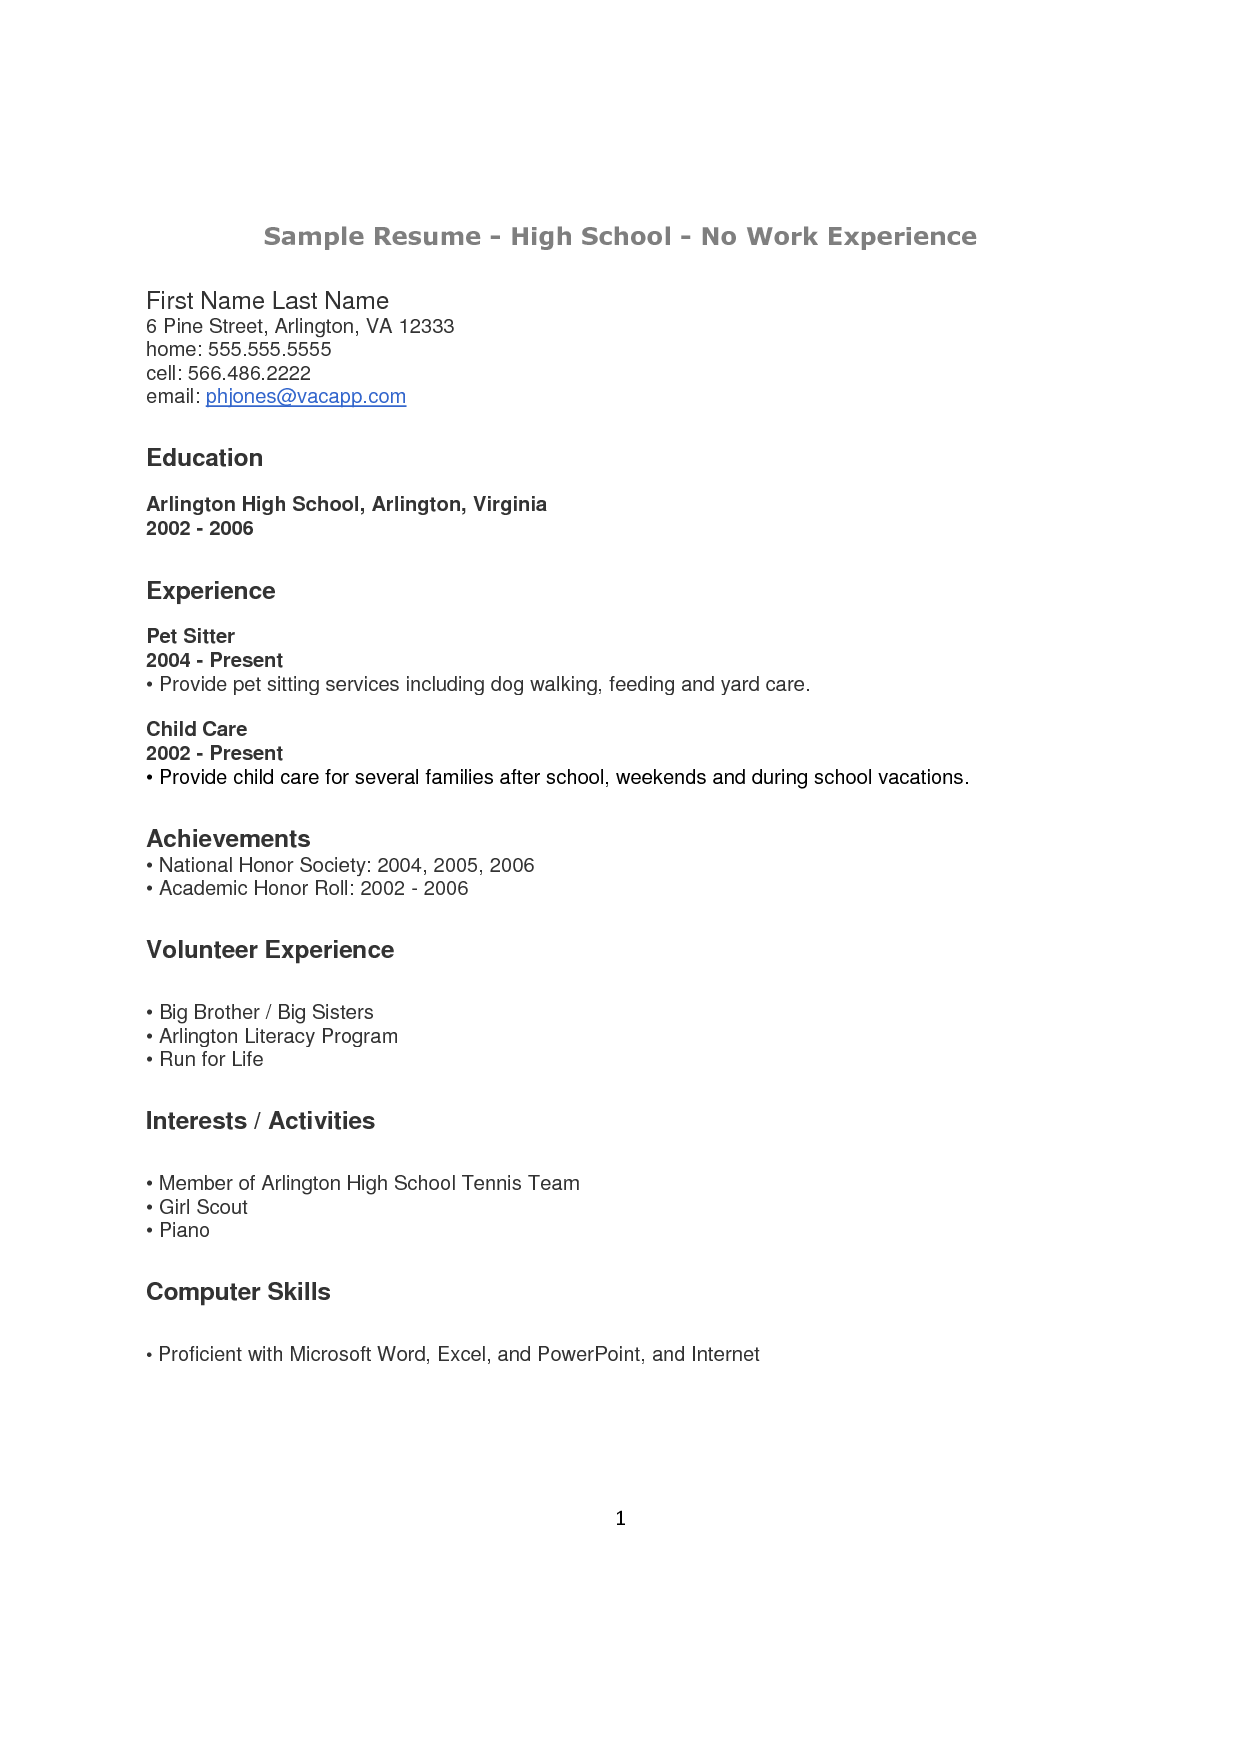 how to make a resume for a highschool student with no experience  Google Search  doc